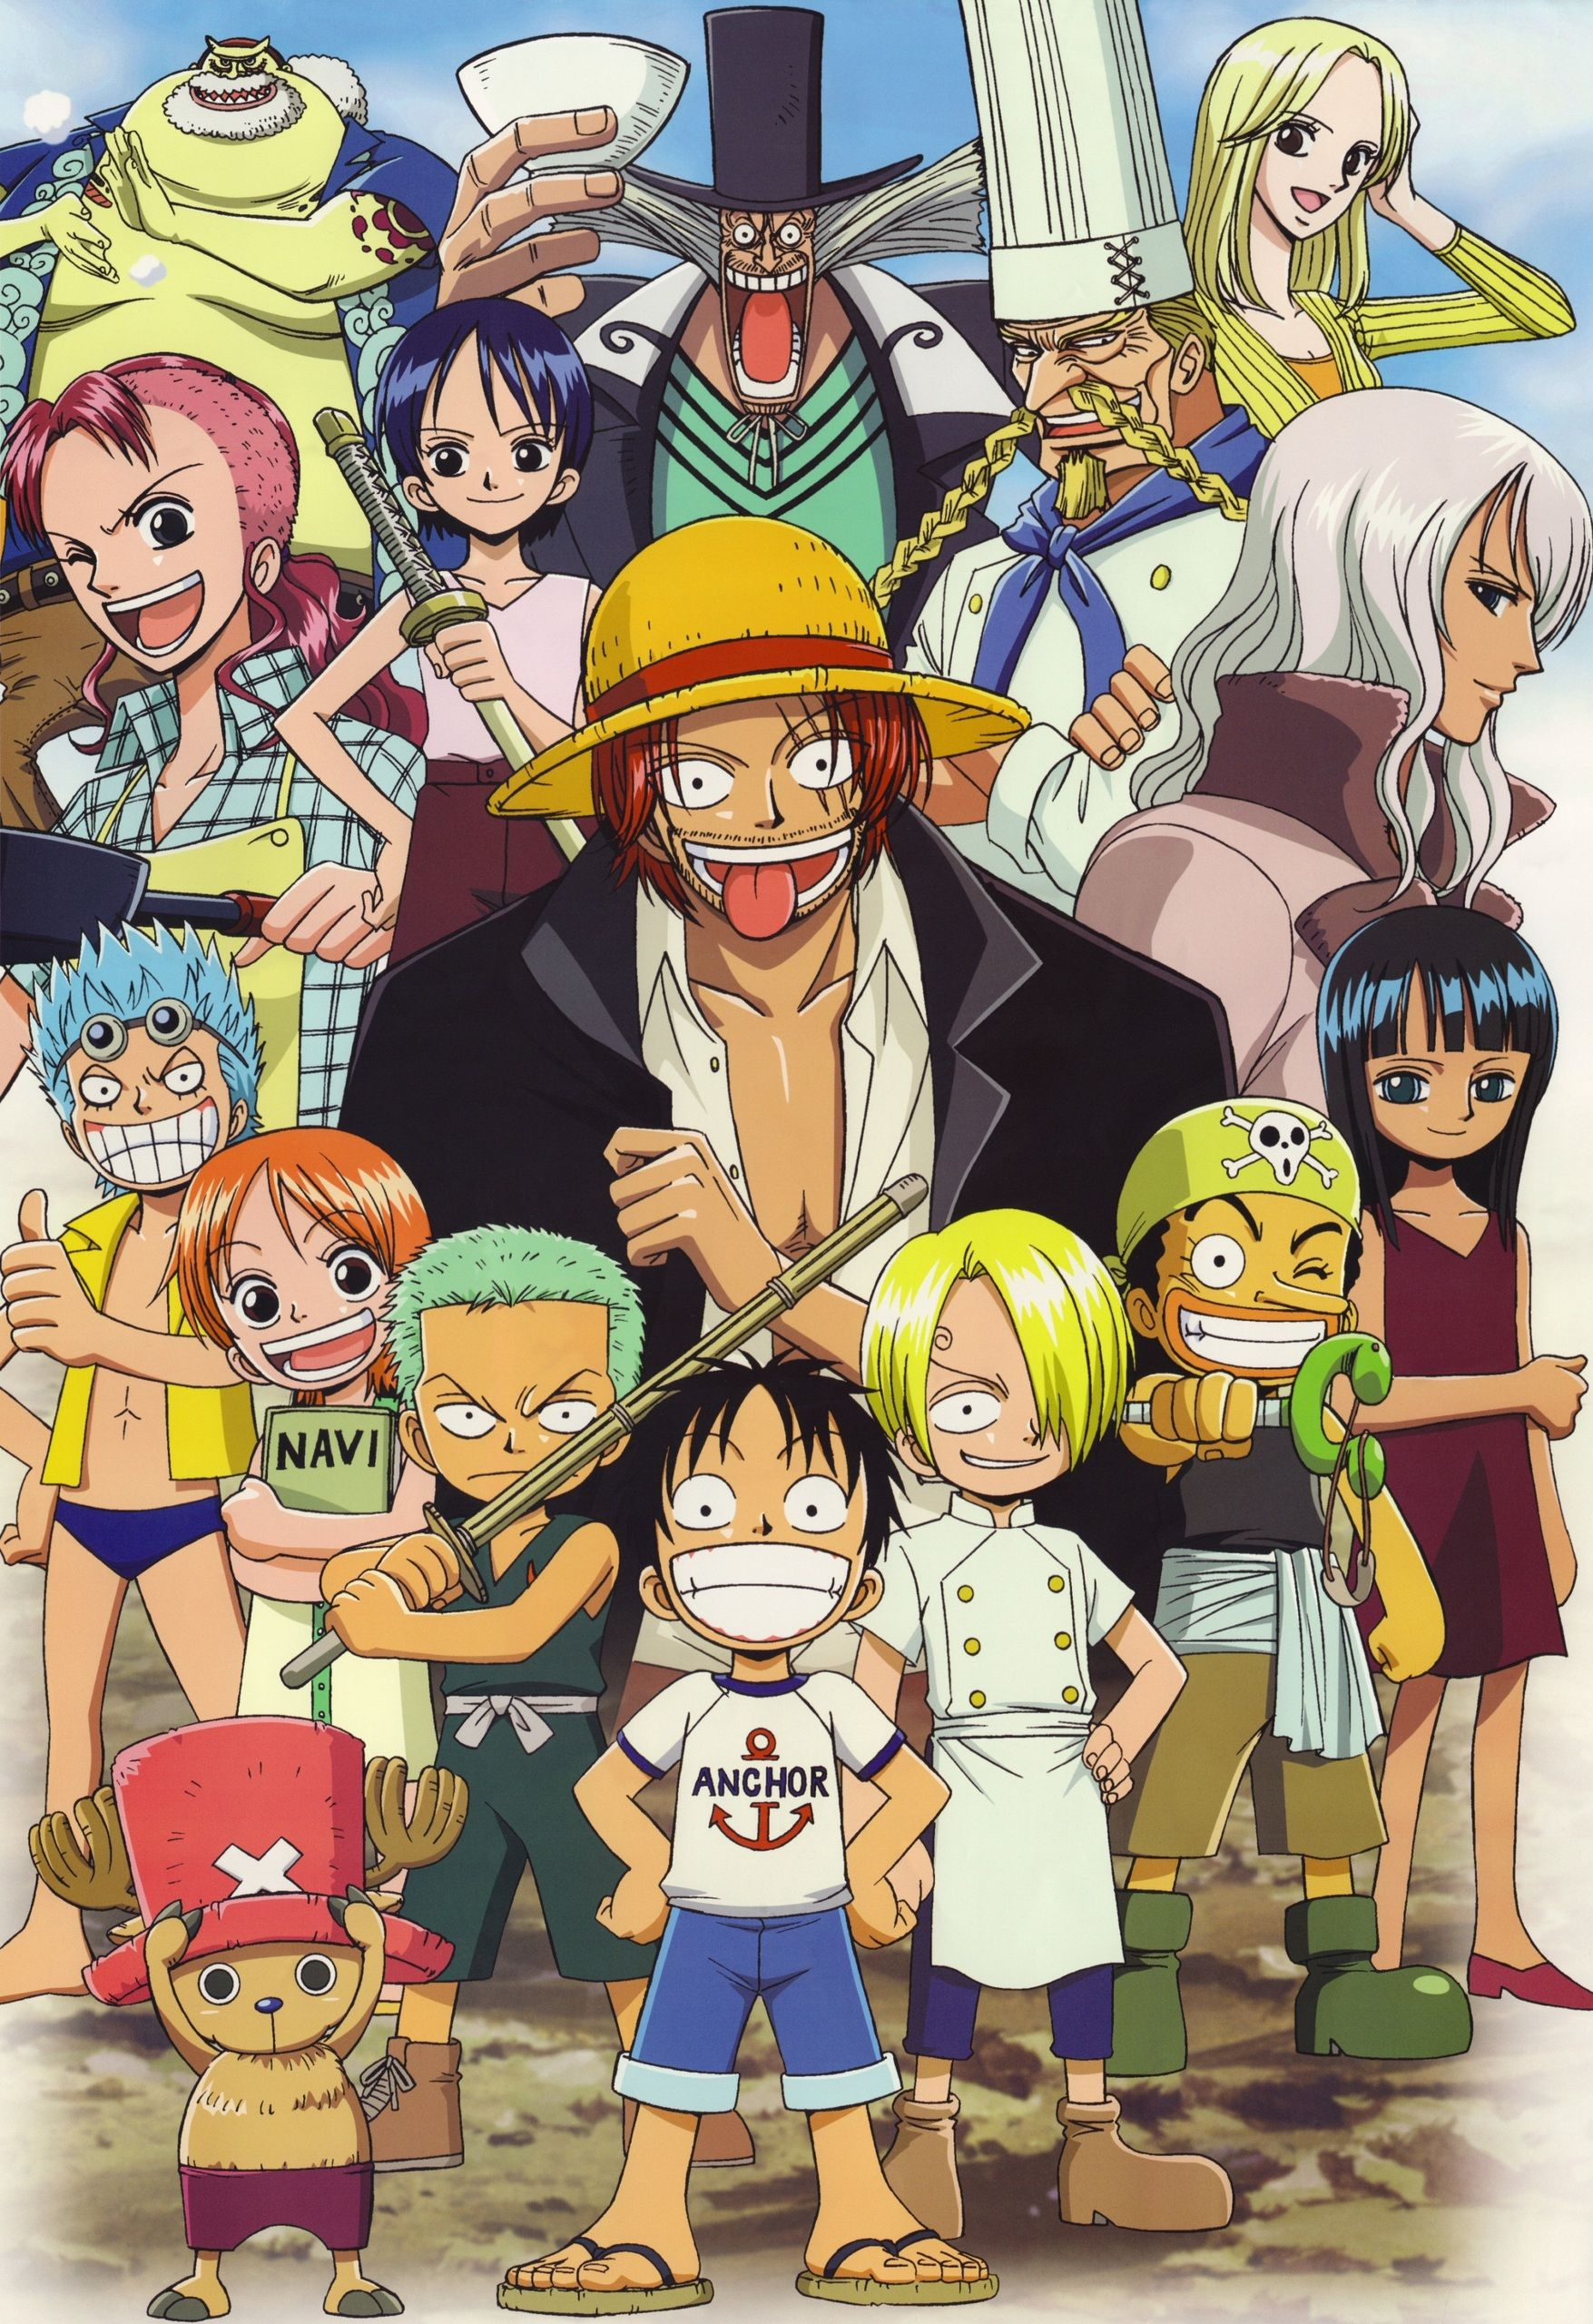 Equipage Enfants One Piece Anime Personagens De Anime Mangá One Piece